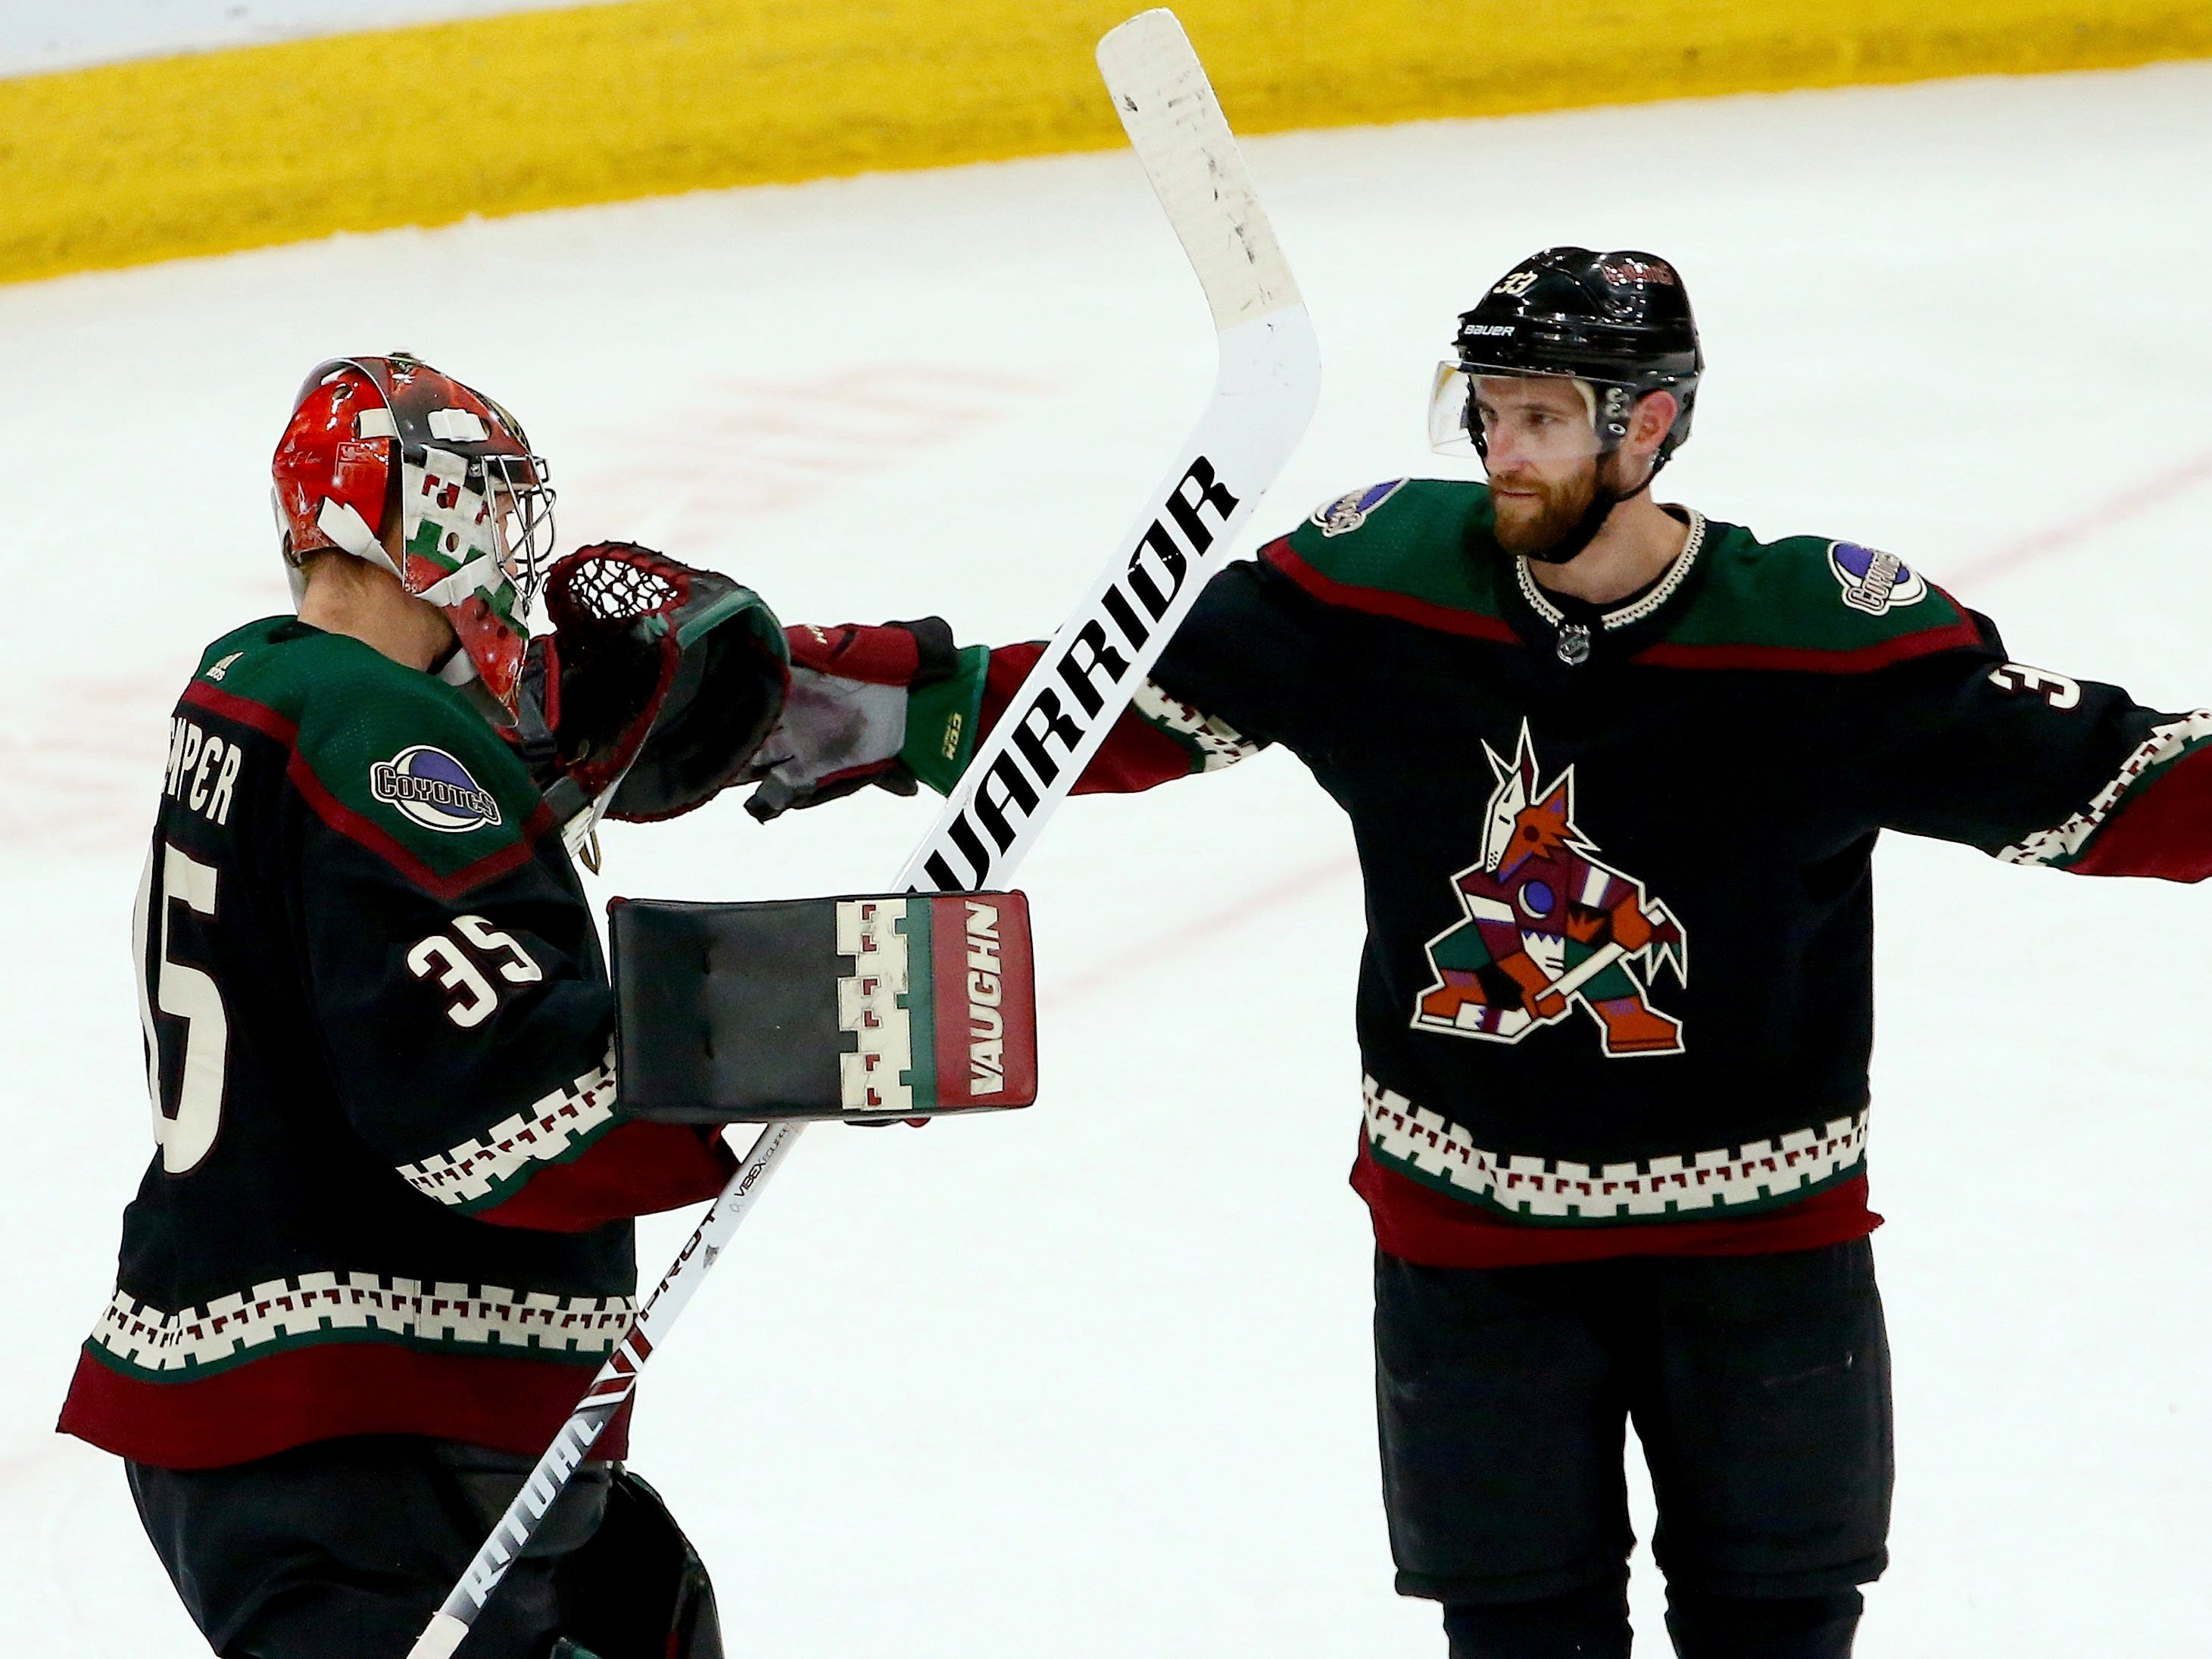 Arizona Coyotes goaltender Darcy Kuemper (35) celebrates a win against the Detroit Red Wings with defenseman Alex Goligoski, right, as time expires in the third period Saturday, March 2, 2019, in Glendale, Ariz. (AP Photo/Ross D. Franklin)